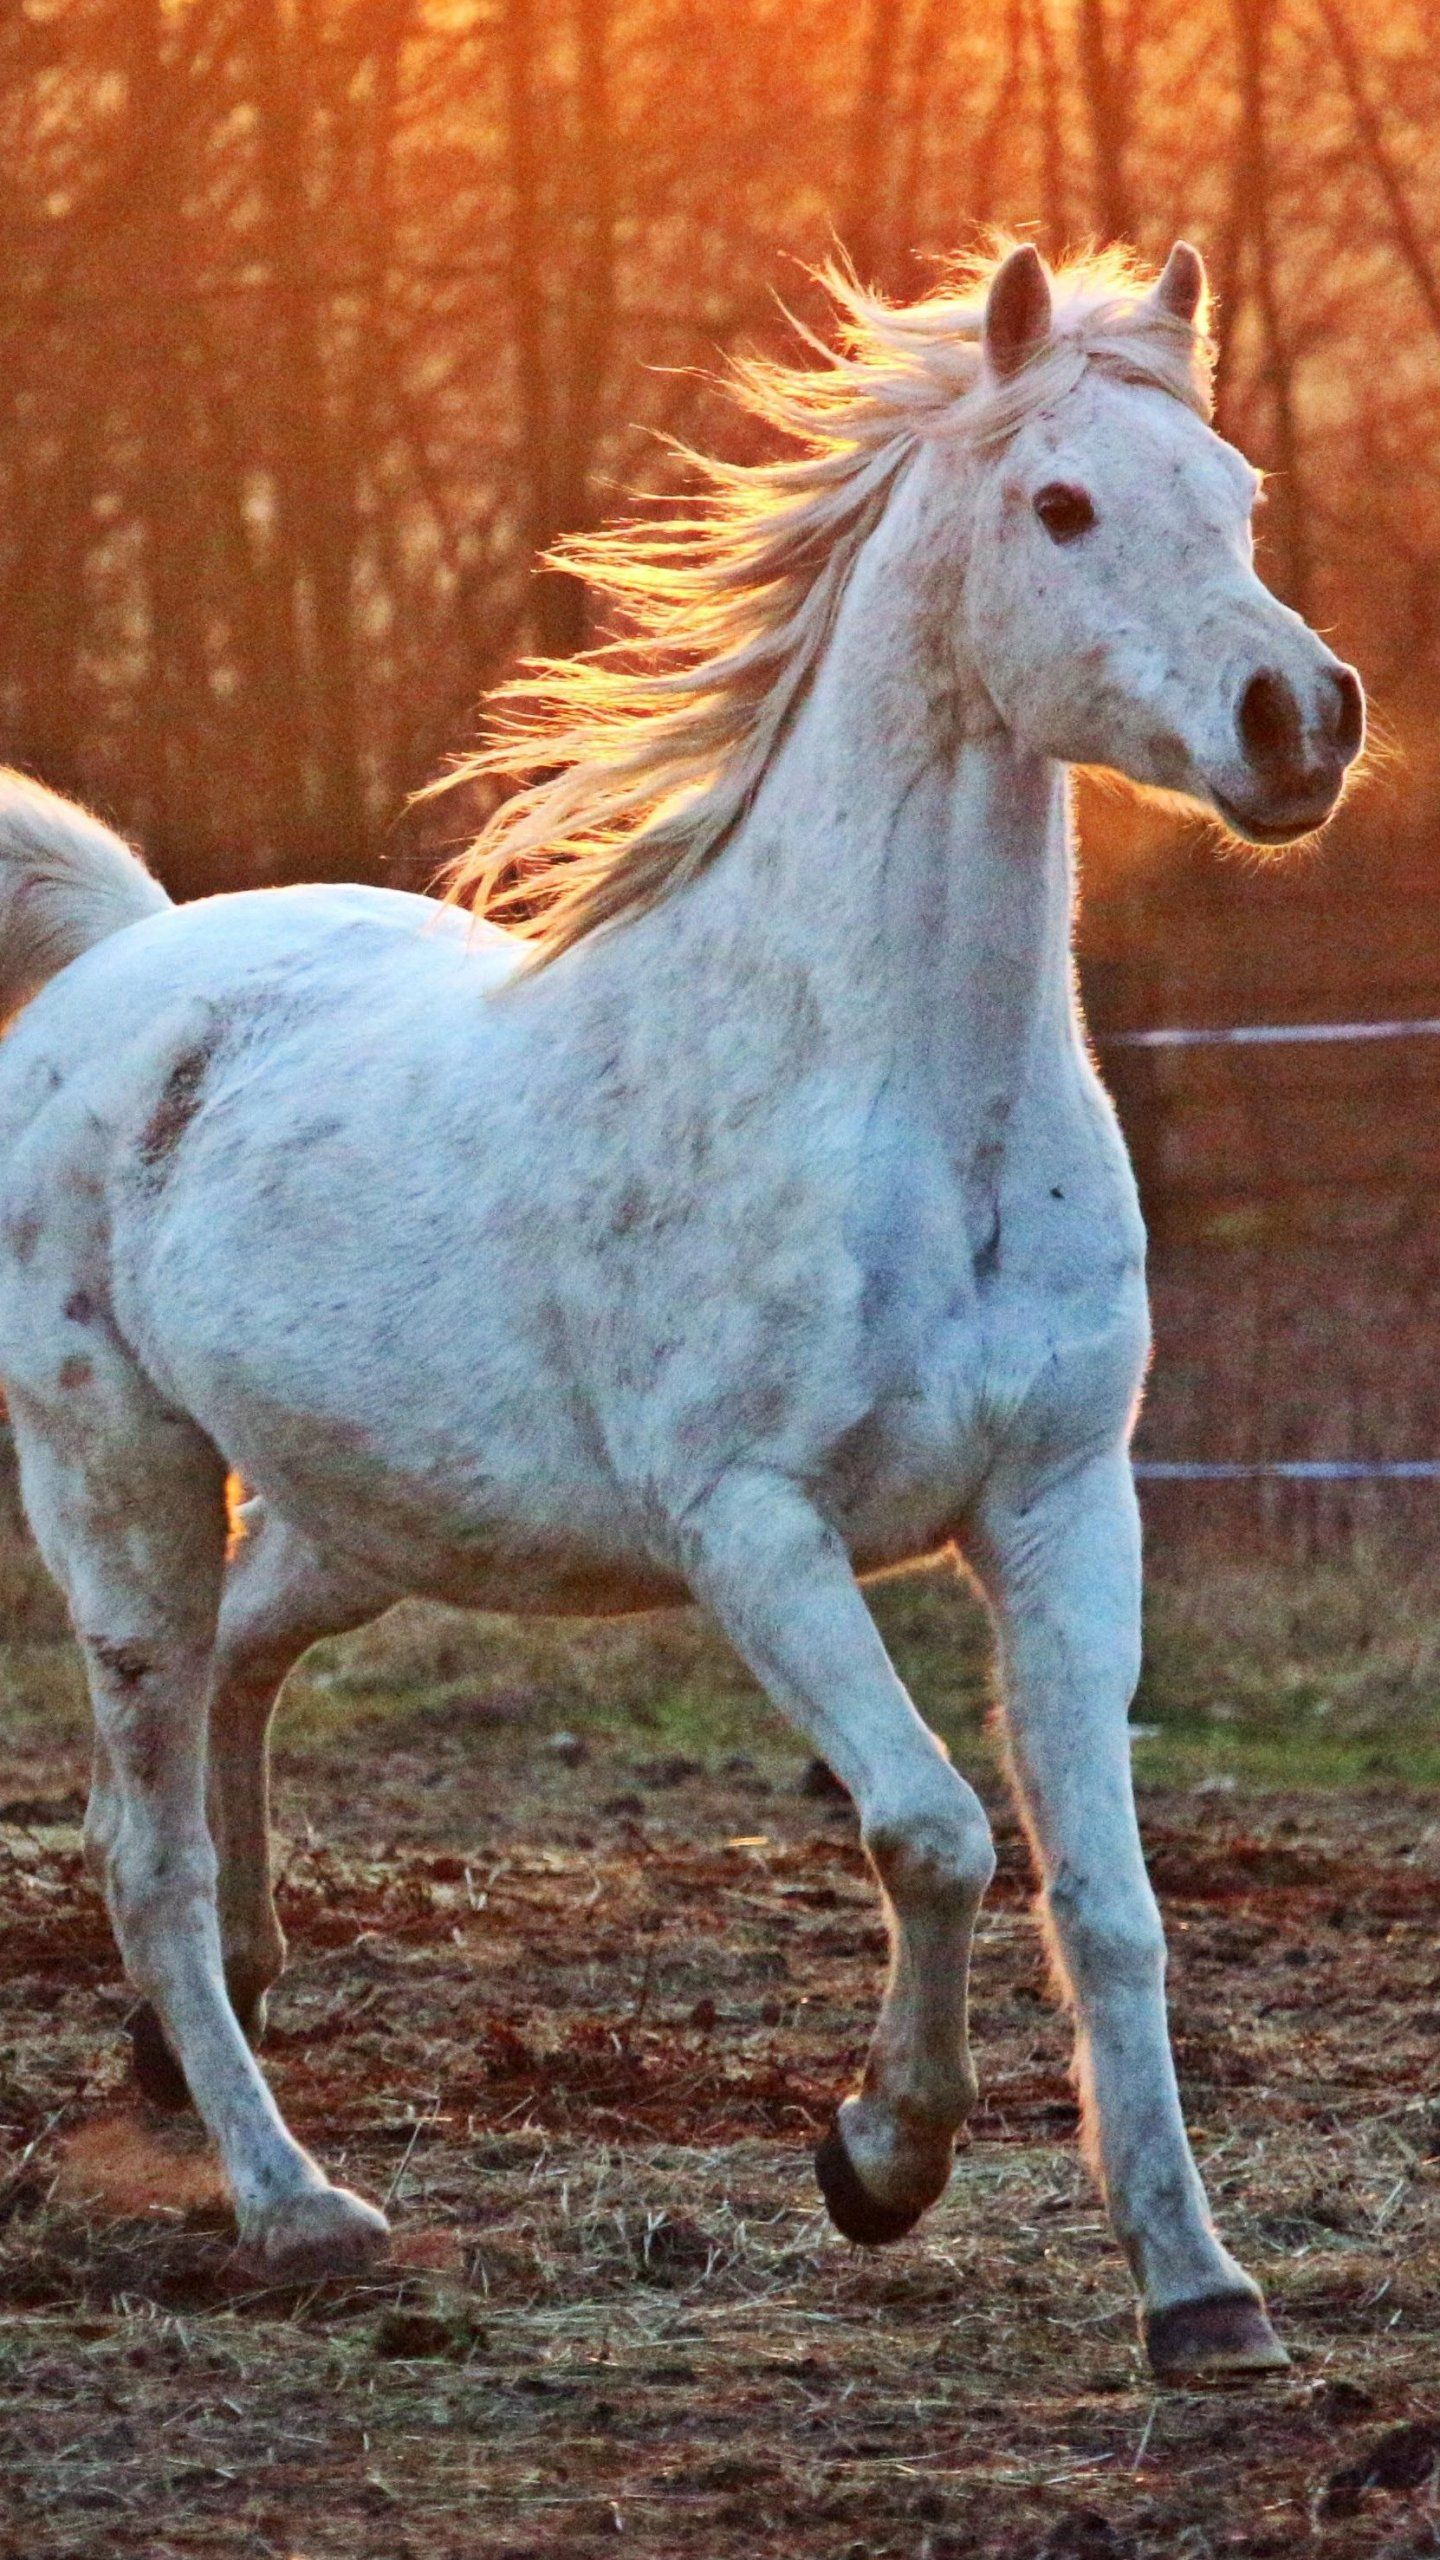 White Arabian Horse Wallpaper Iphone Android Desktop Backgrounds Horse Wallpaper White Arabian Horse Horses